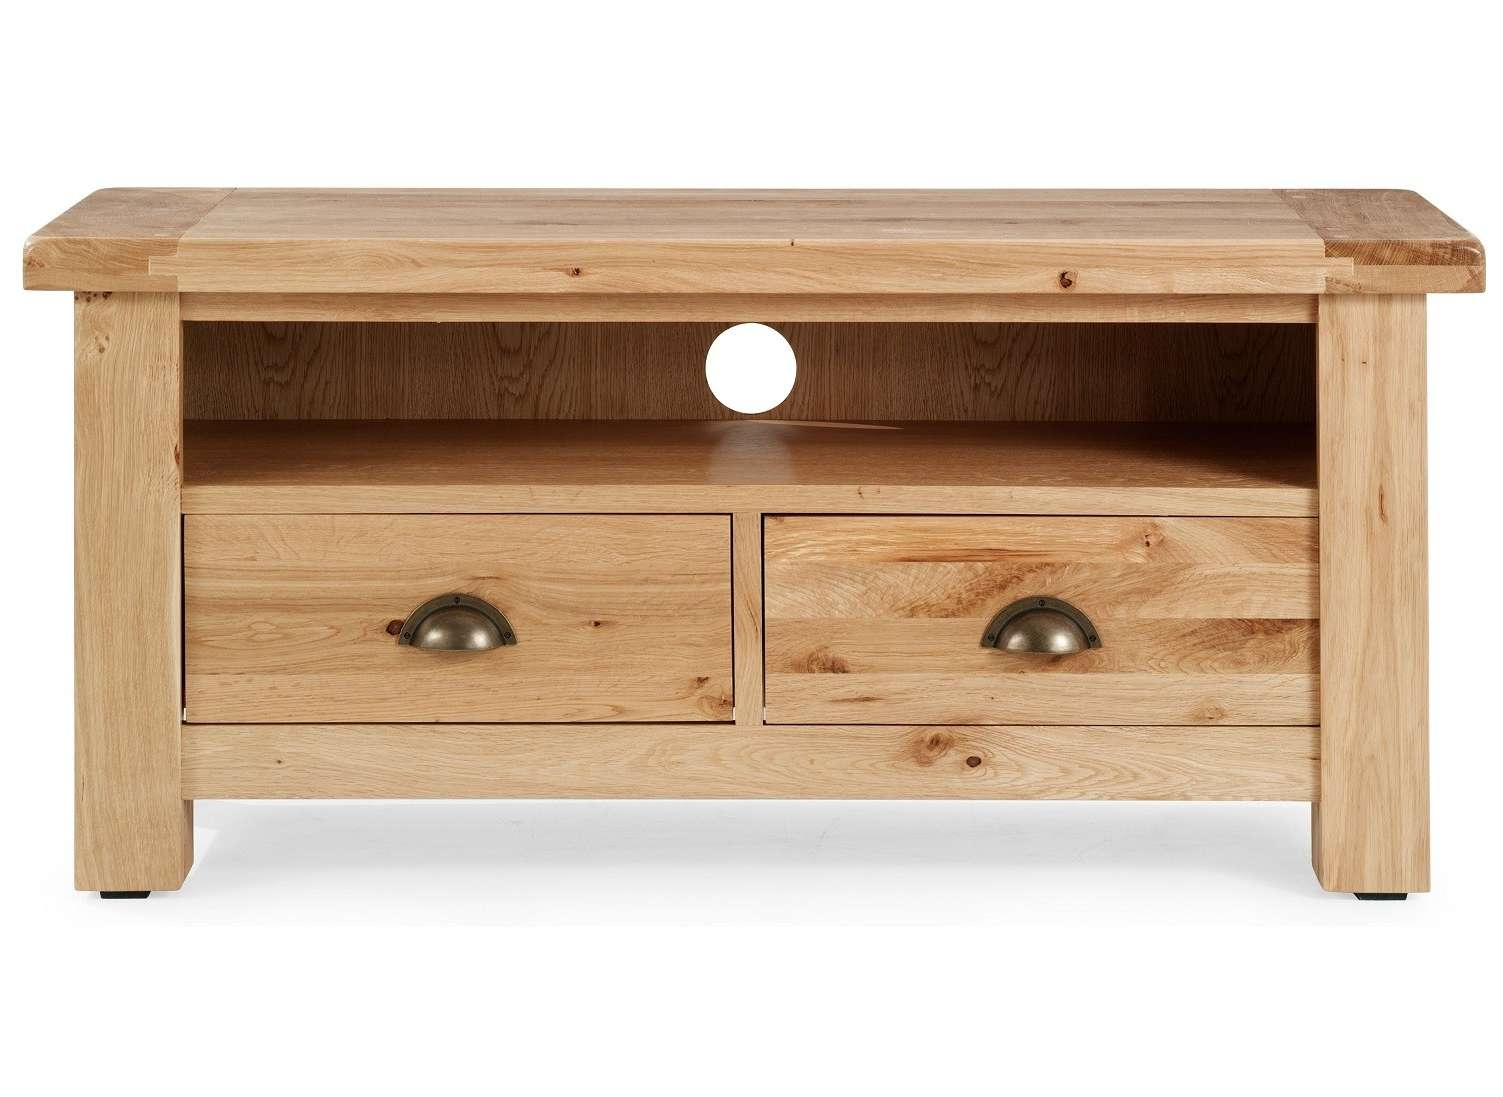 Normandy Rustic French Oak Tv Cabinet | Oak Furniture Uk In Rustic Oak Tv Stands (View 7 of 15)